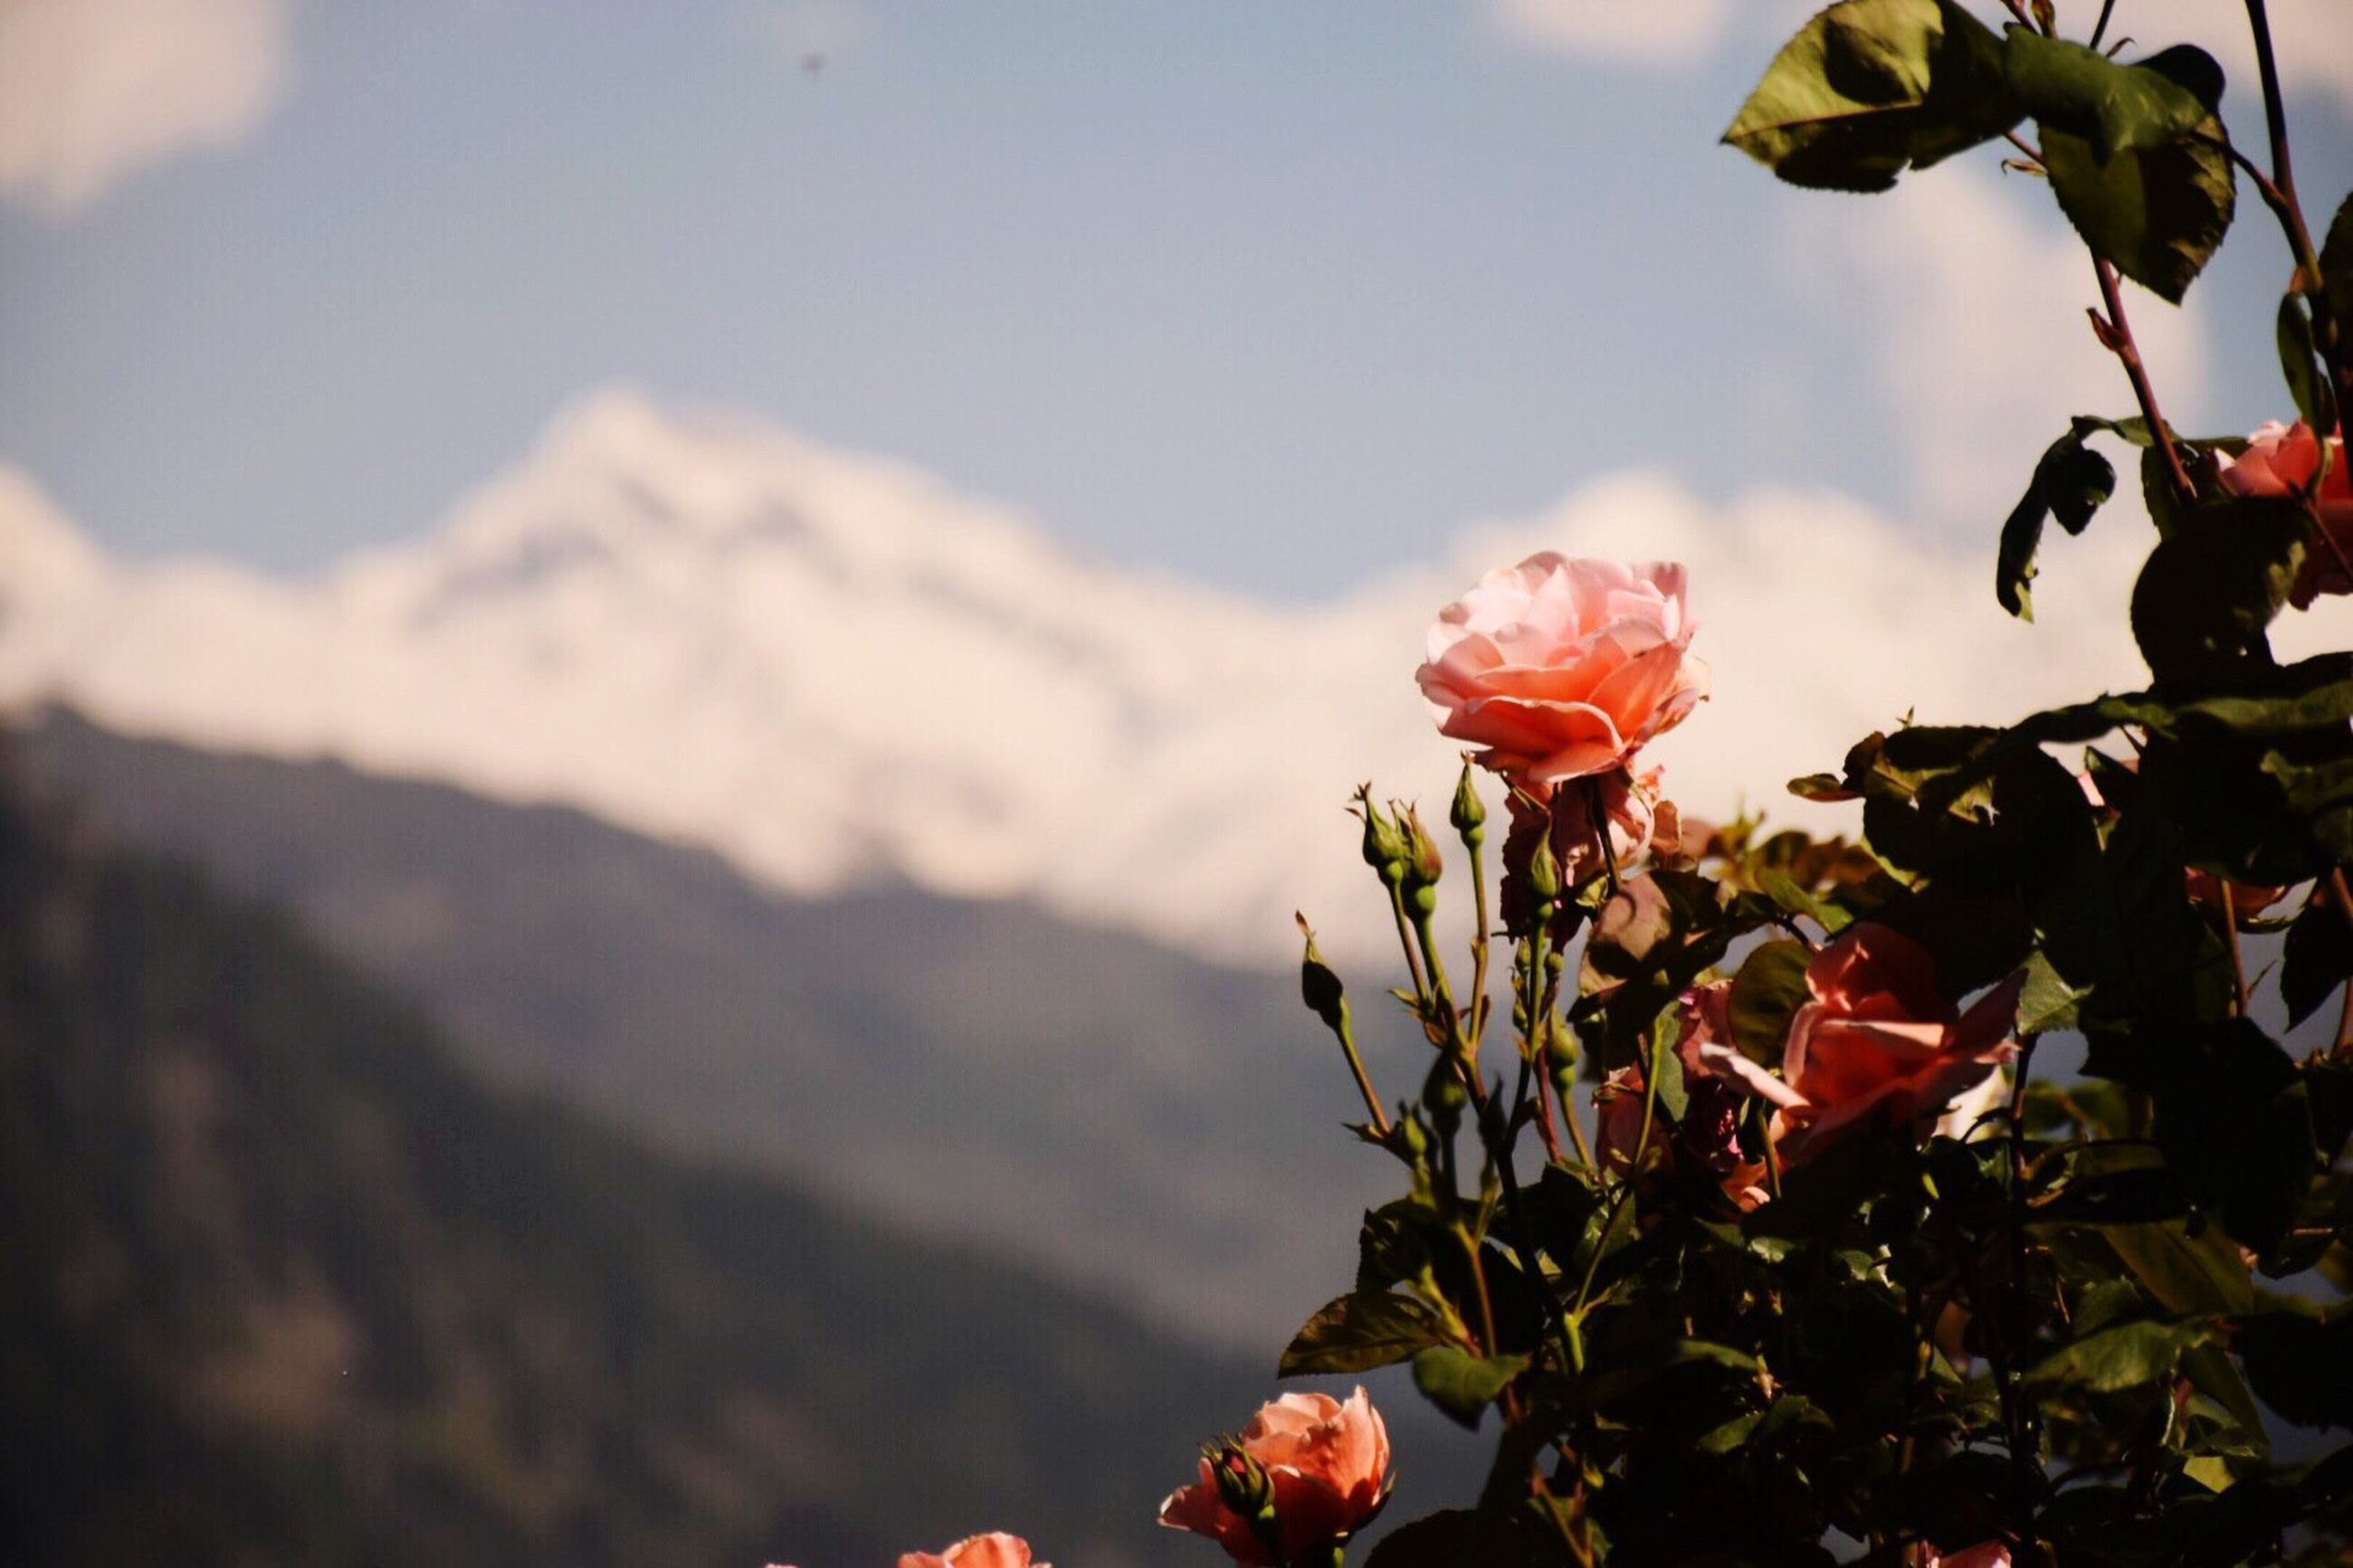 flower, flowering plant, plant, beauty in nature, growth, freshness, nature, close-up, vulnerability, mountain, focus on foreground, fragility, petal, flower head, inflorescence, day, outdoors, no people, plant part, sky